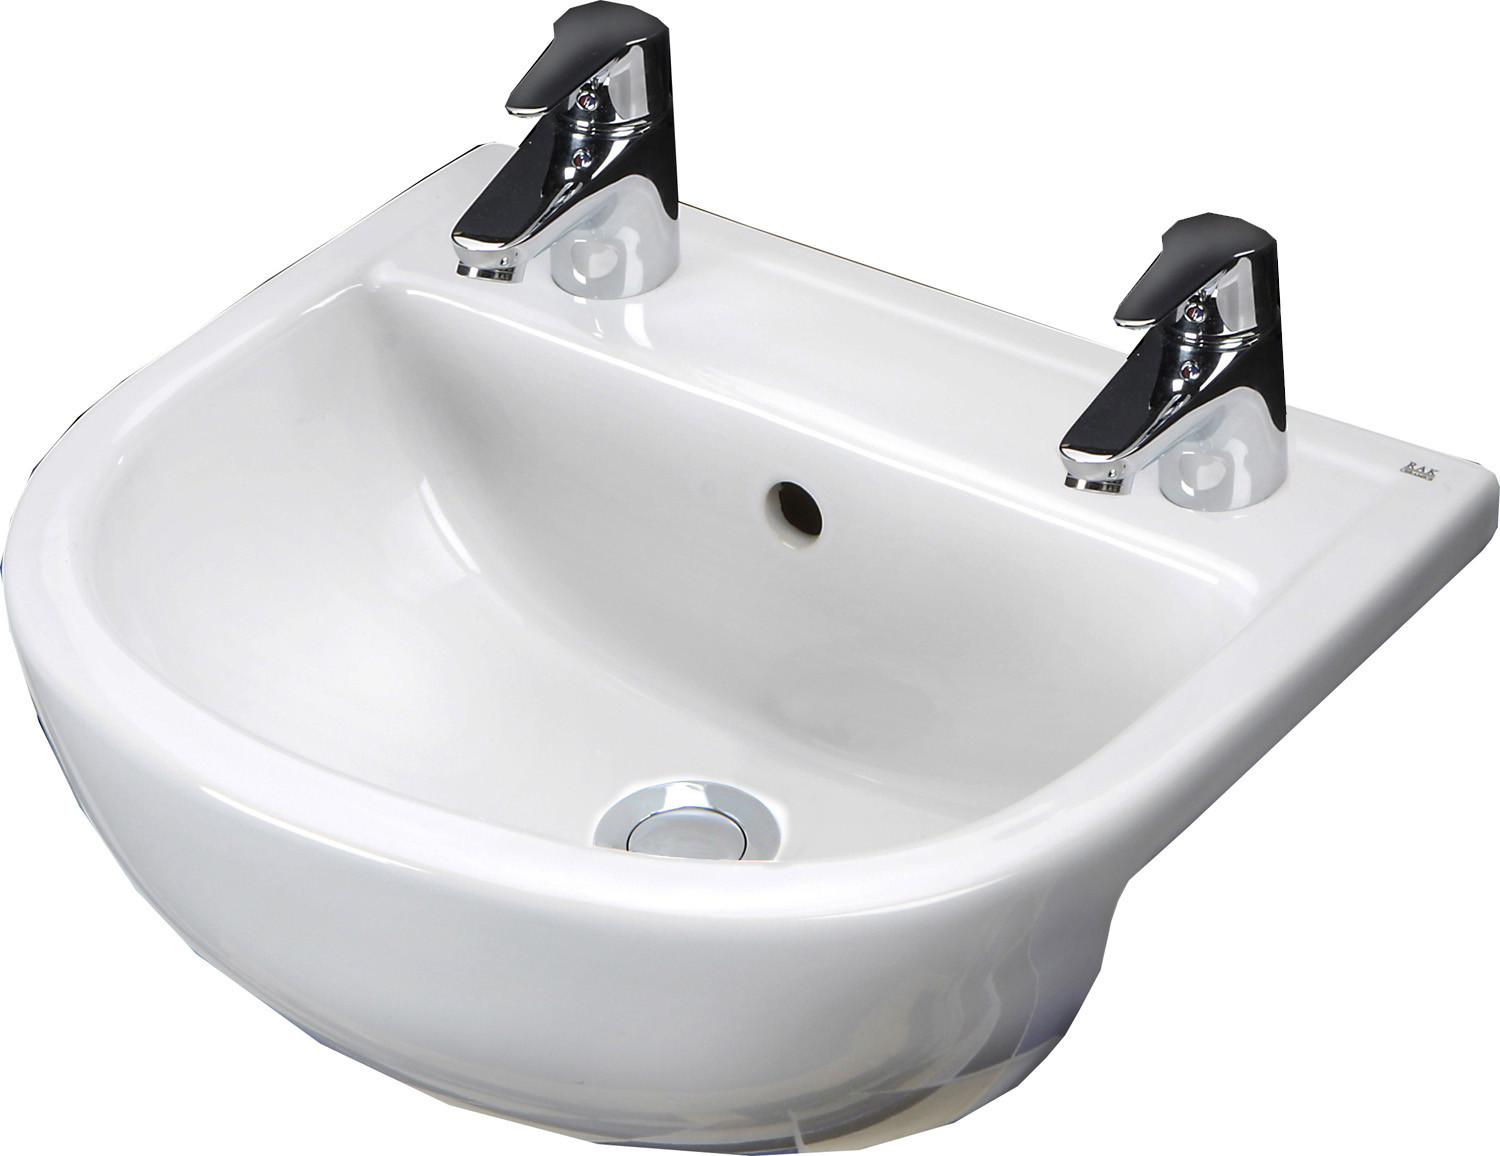 Compact 450mm Semi-Recessed Basin - 2 Tap Holes